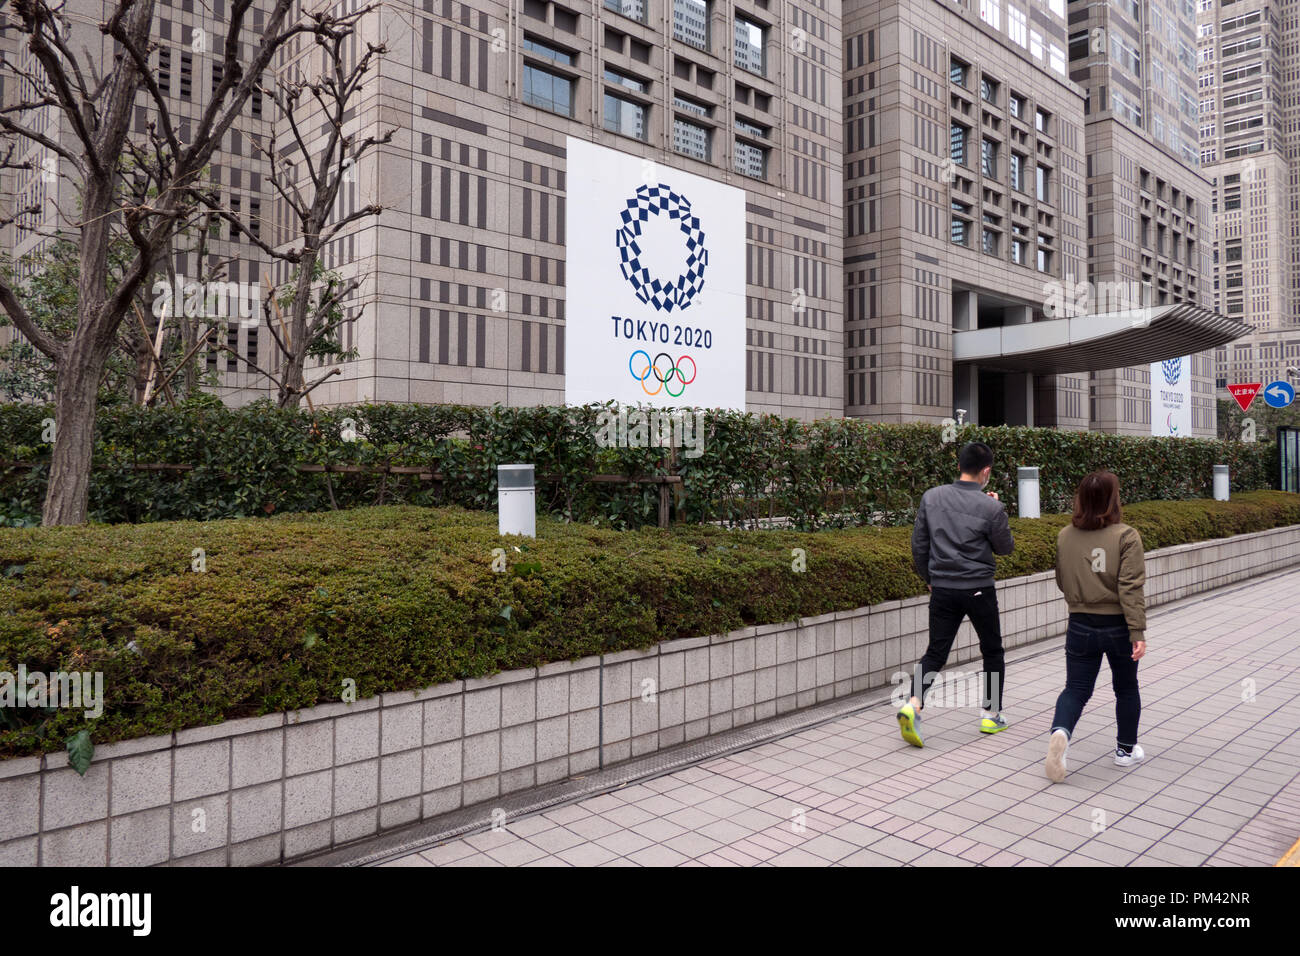 Sign for the Tokyo 2020 Summer Olympics, the Games of the XXXII Olympiad, on a building in Tokyo, Japan, Asia - Stock Image